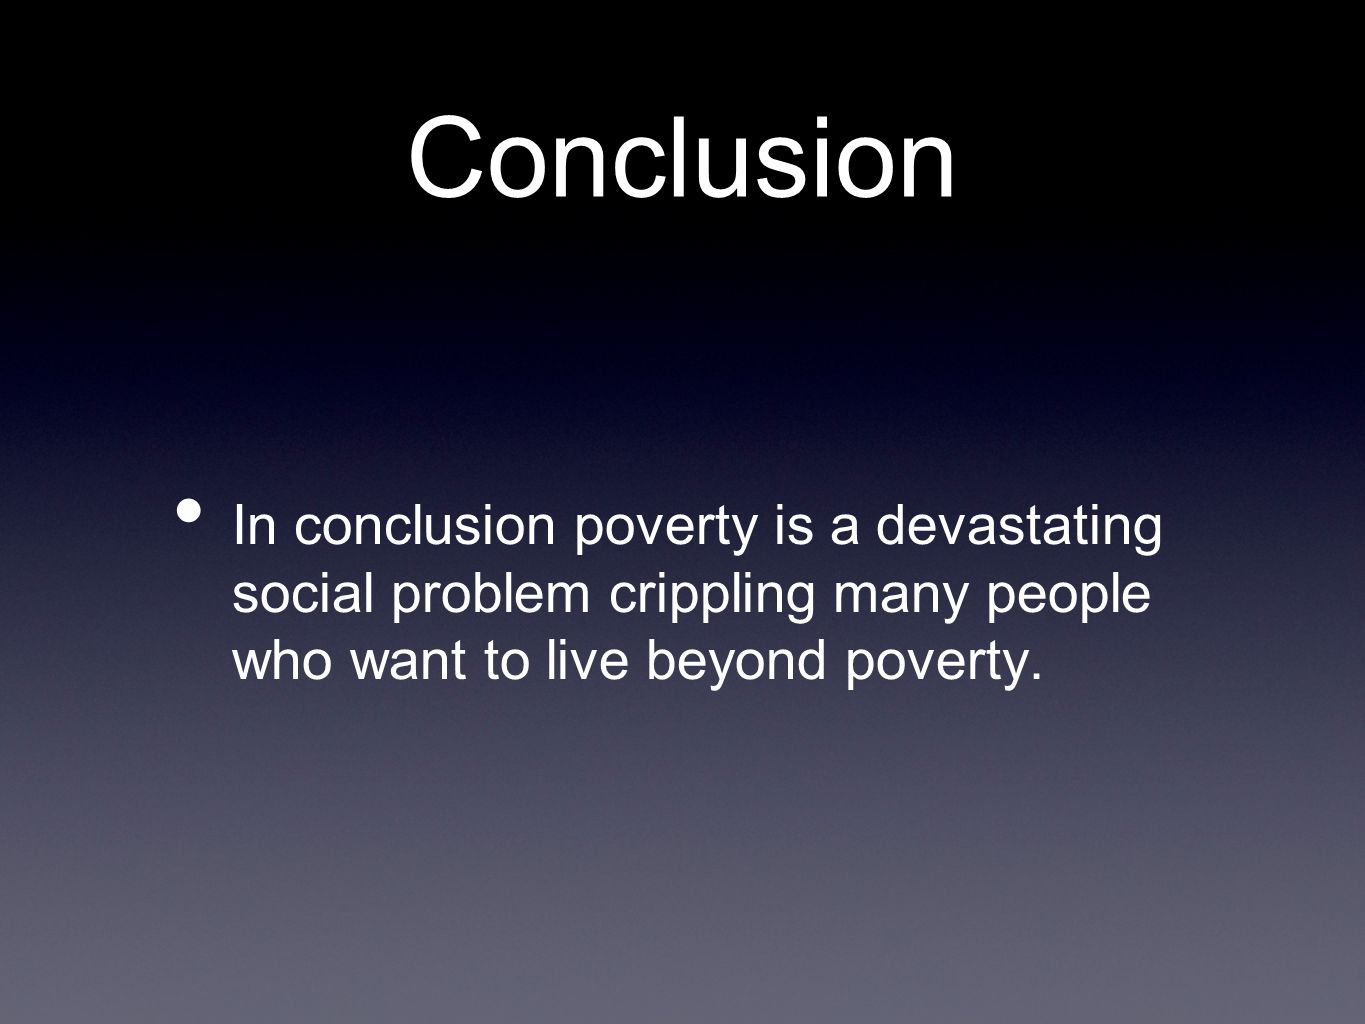 Poverty - Conclusion